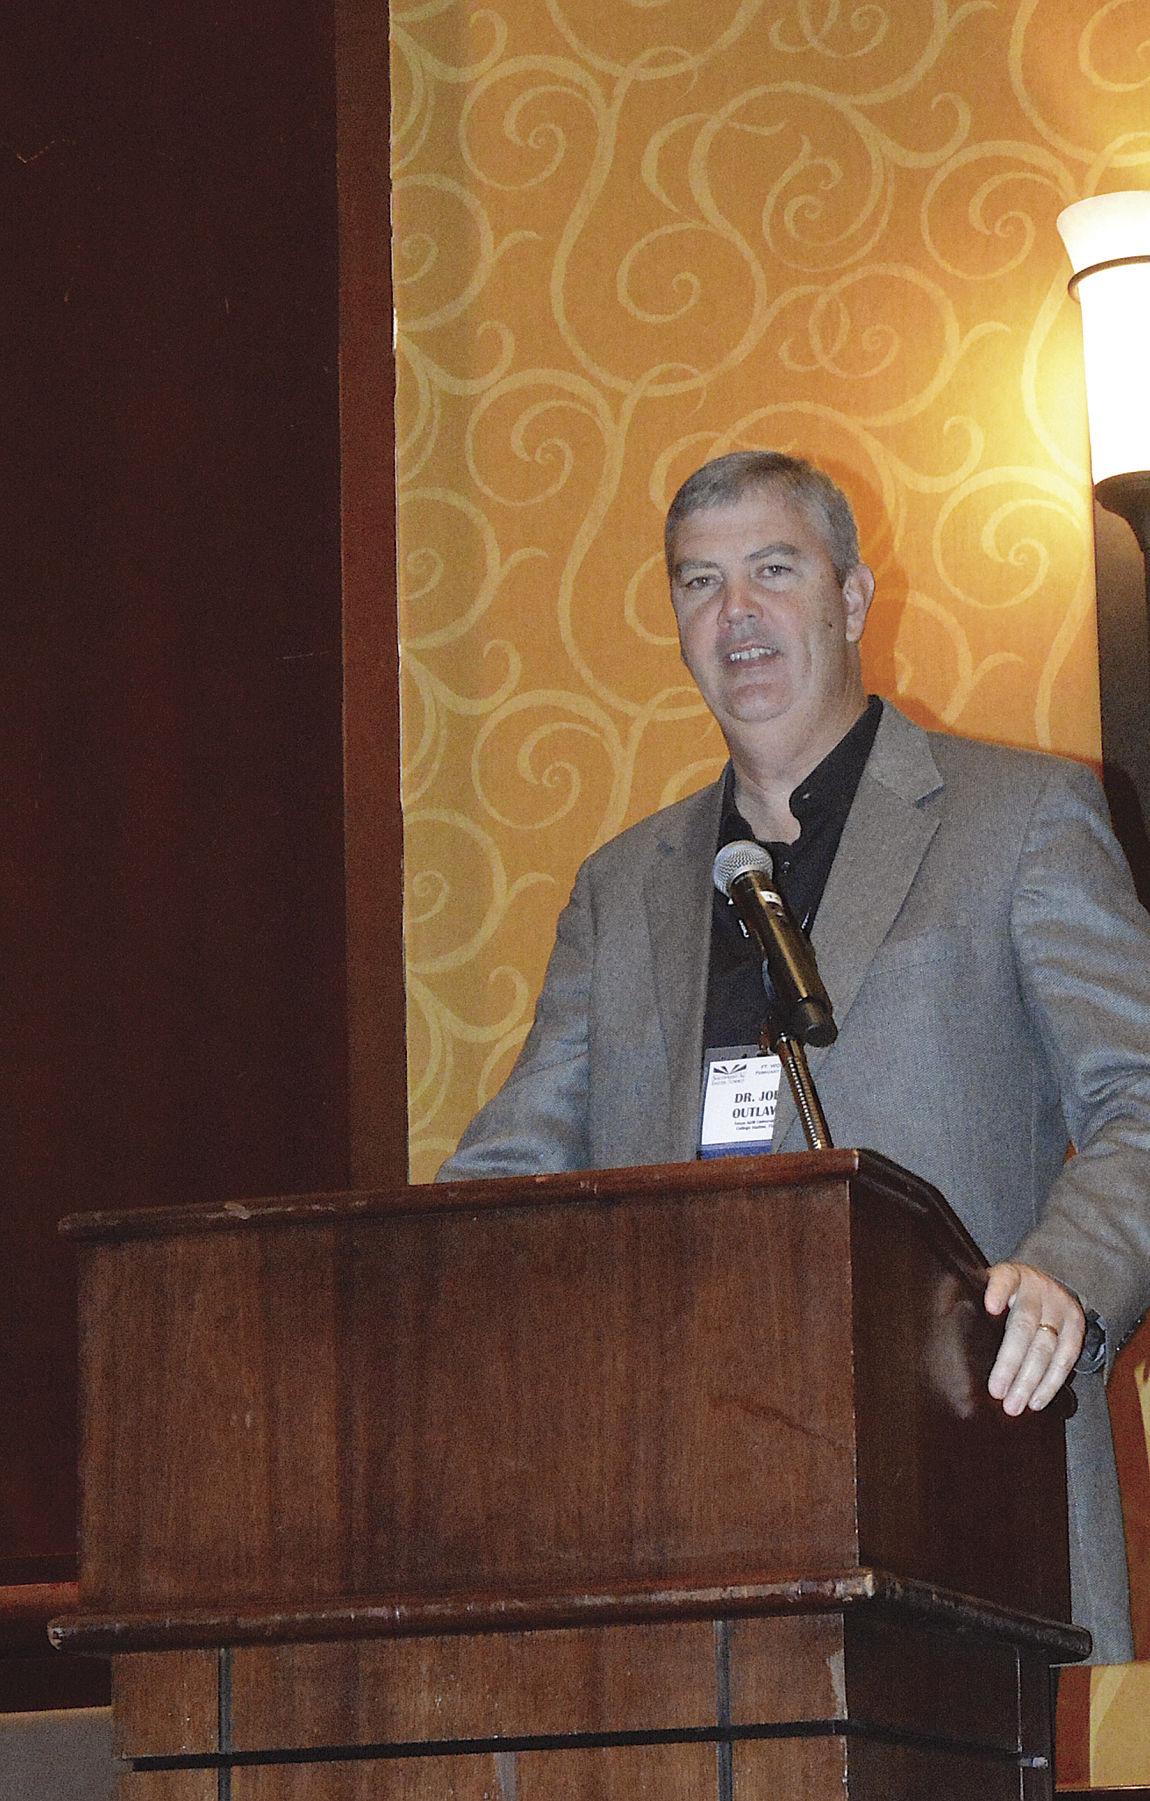 Farm policy, new commodity innovations, trends highlight BIG Conference